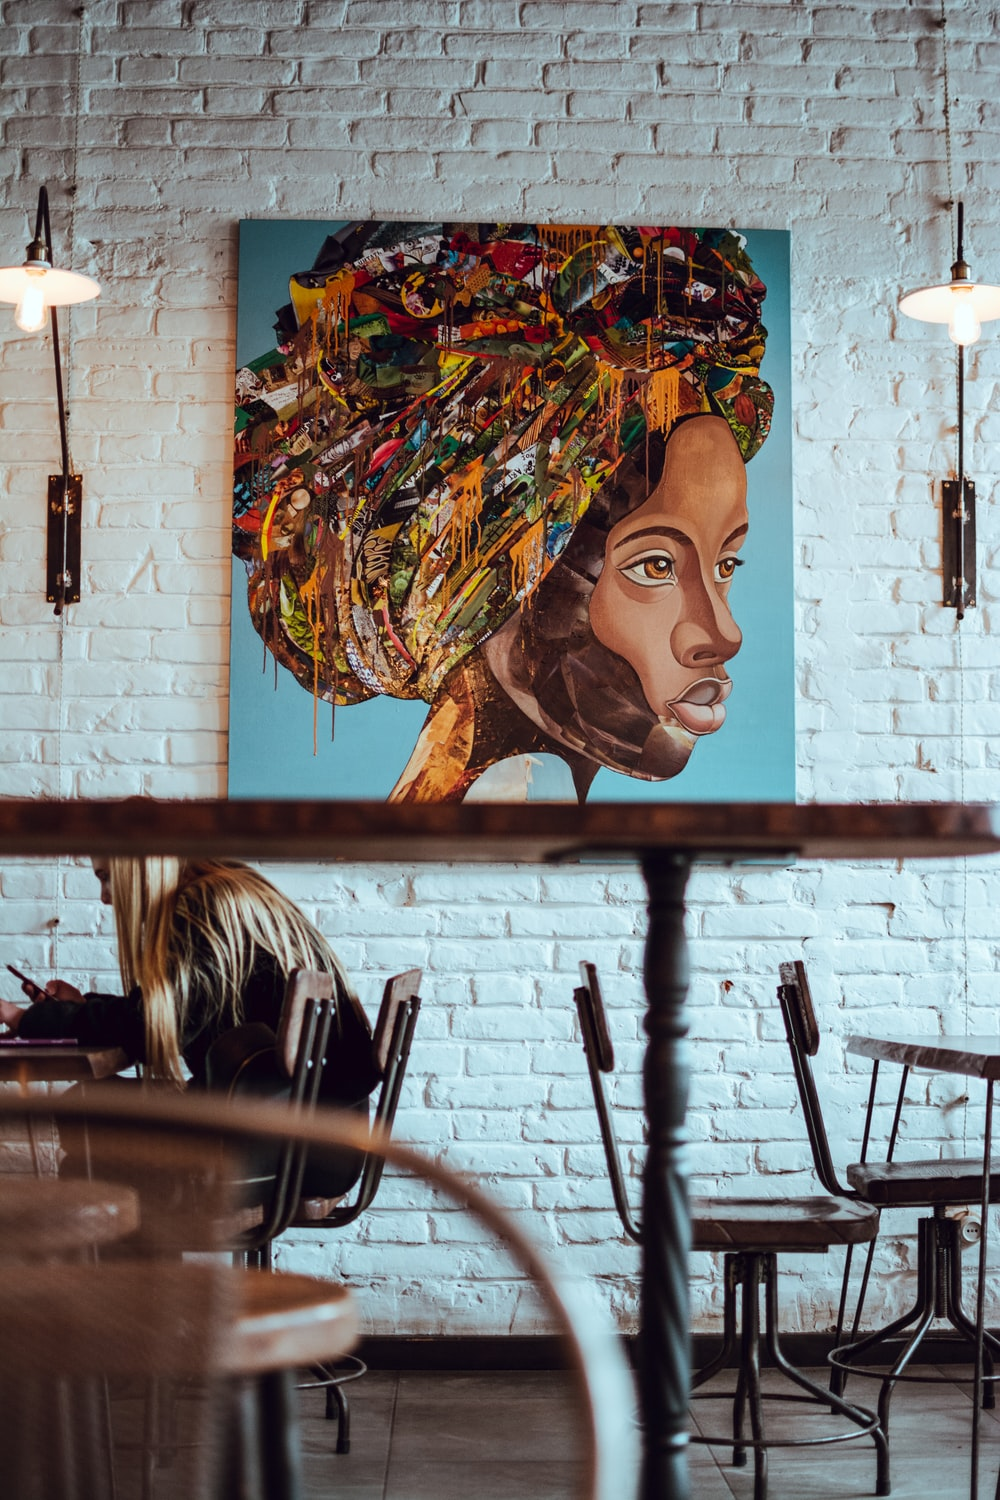 multicolored painting of woman's portrait hanging on wall